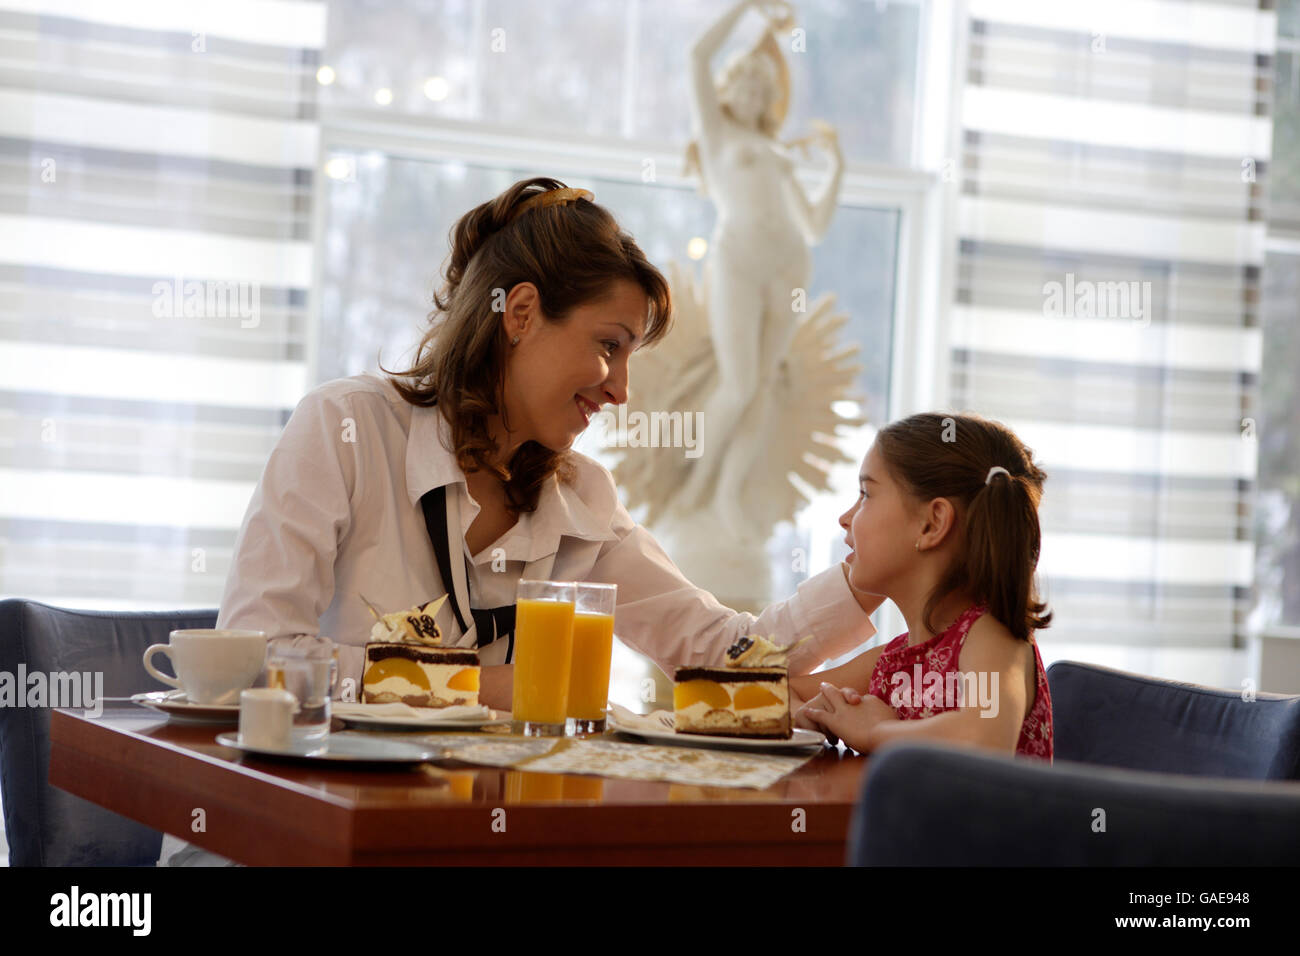 Mother and daughter sitting in a café - Stock Image